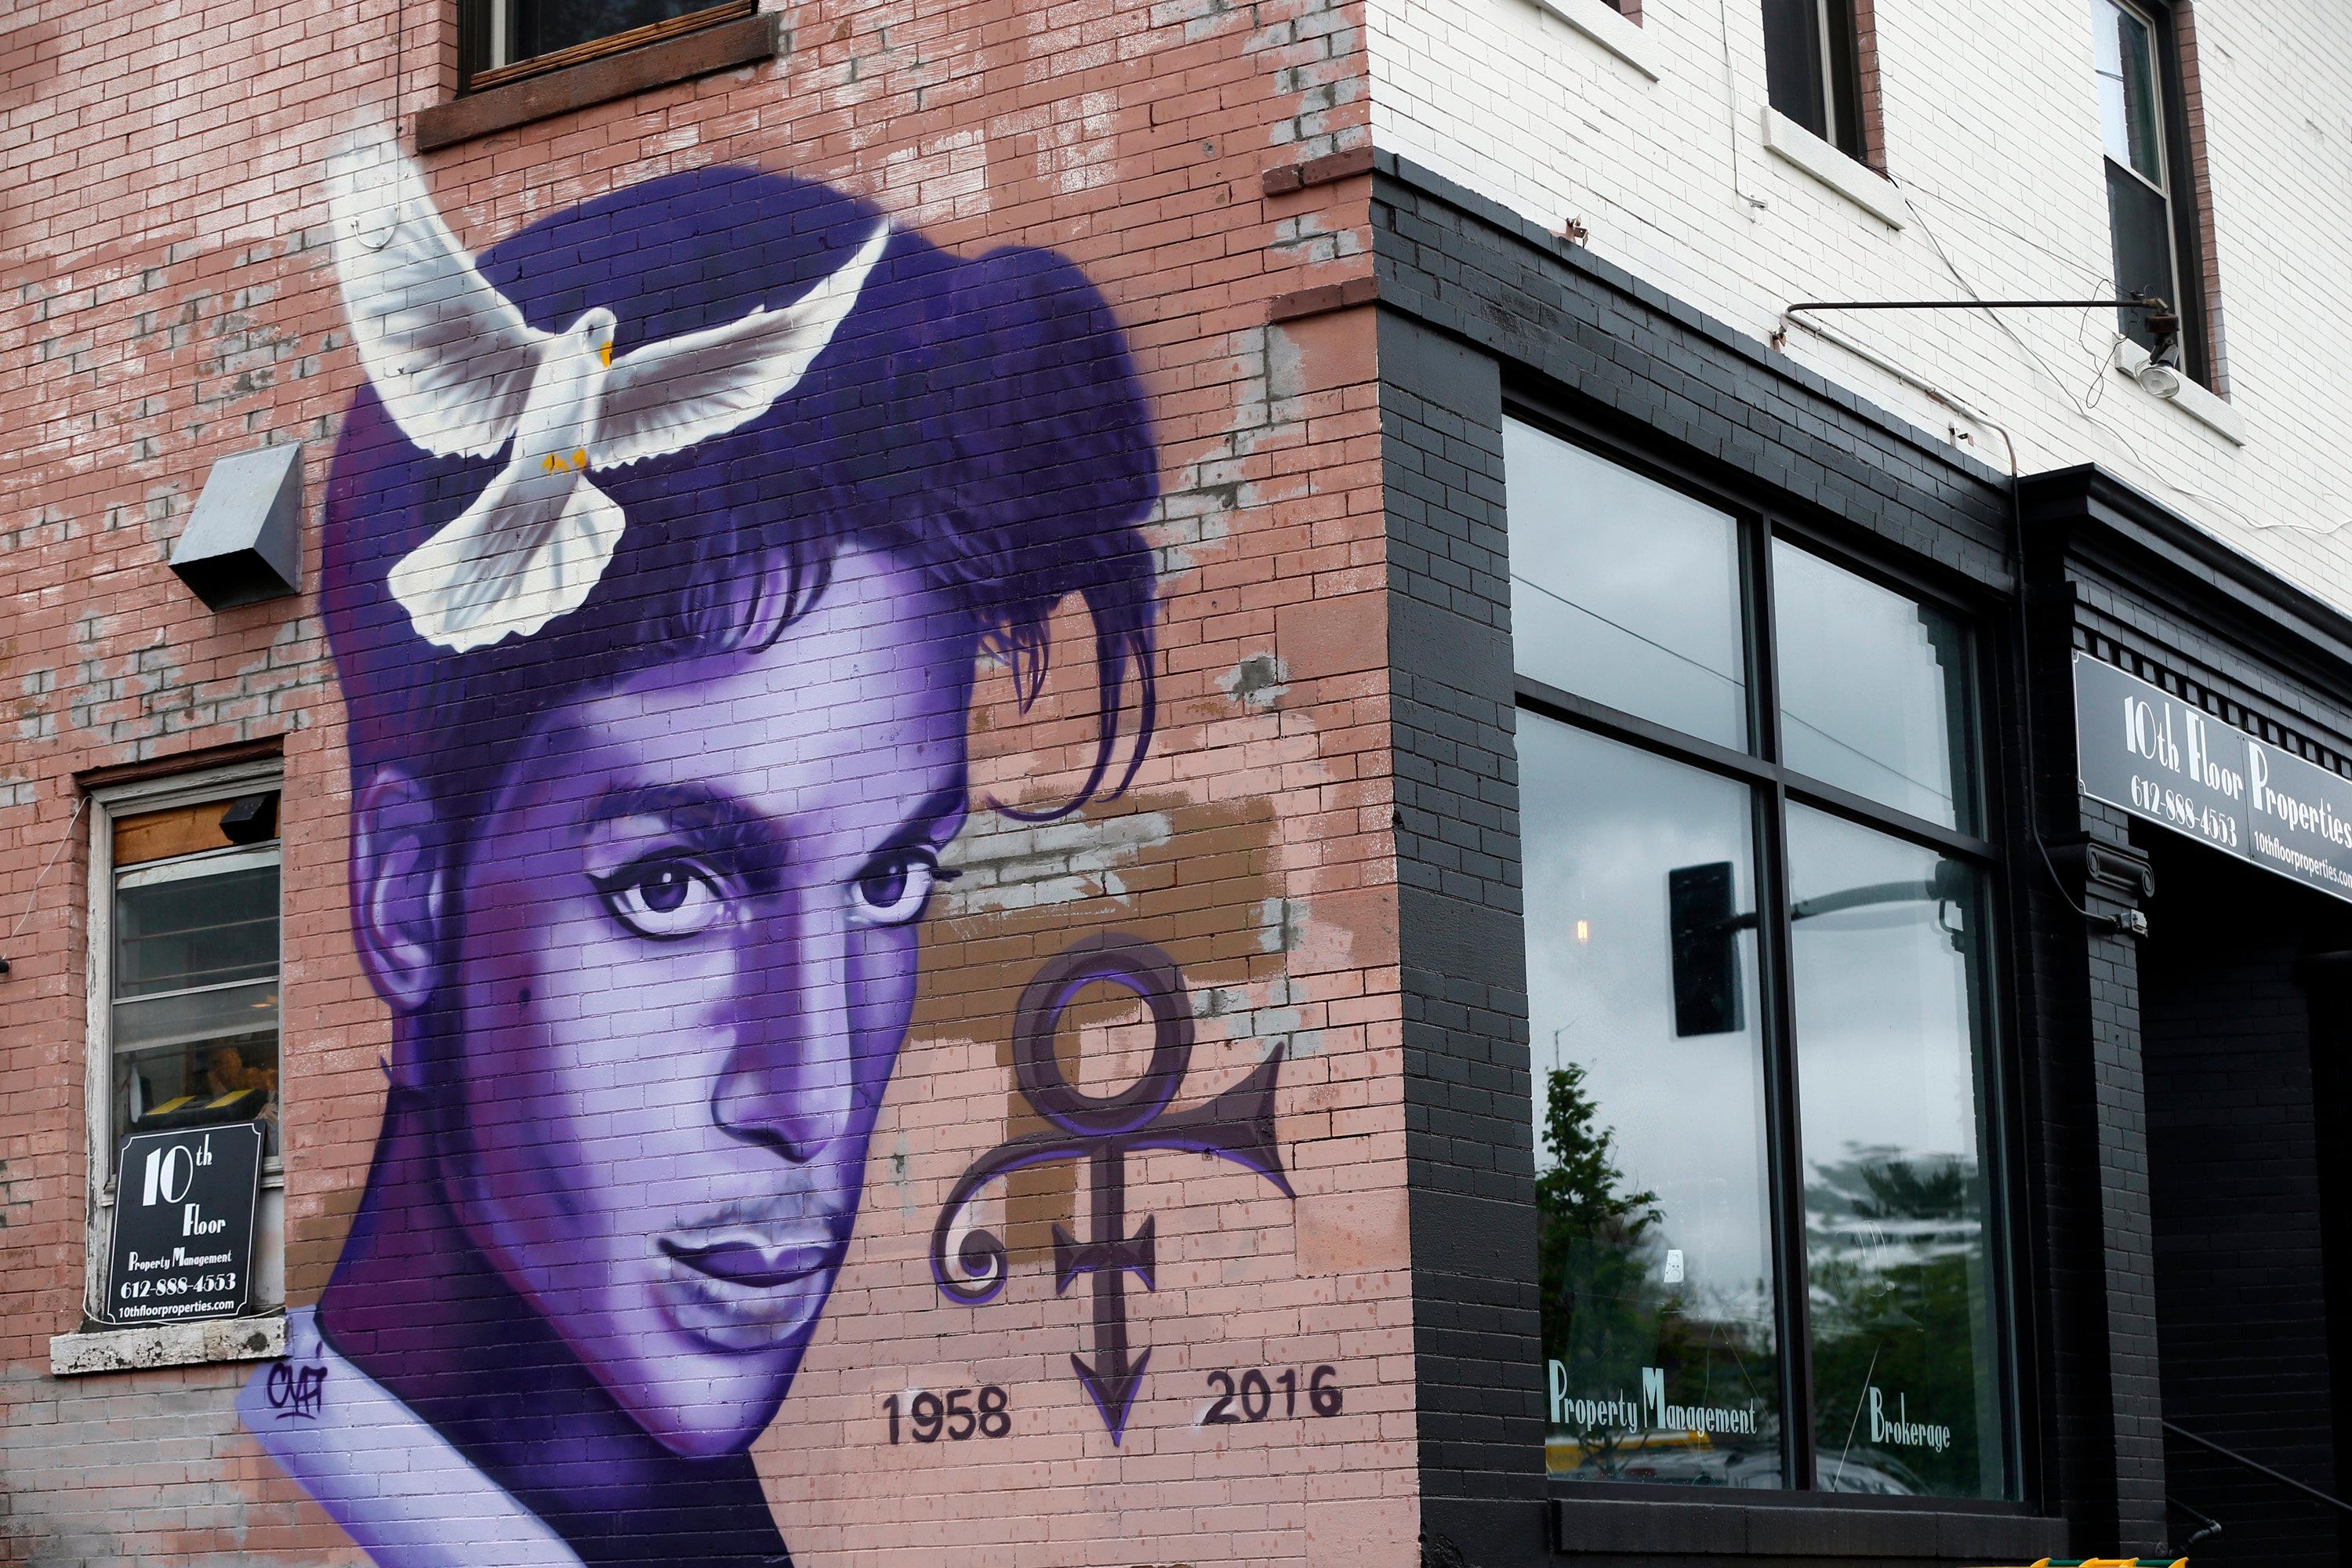 "FILE - In this Aug 28, 2016, file photo, a mural honoring the late Prince adorns a building in the Uptown area of Minneapolis. In addition, at his home and recording studio-turned-museum, a full four days of events are on tap for the one-year anniversary of his death on April 21, 2016, ranging from concert performances by the great one's former band mates to panel discussions on his legacy. Fans who can't afford those high-dollar tickets can head to a street party outside the club he made famous in ""Purple Rain."" (AP Photo/Jim Mone, File)"